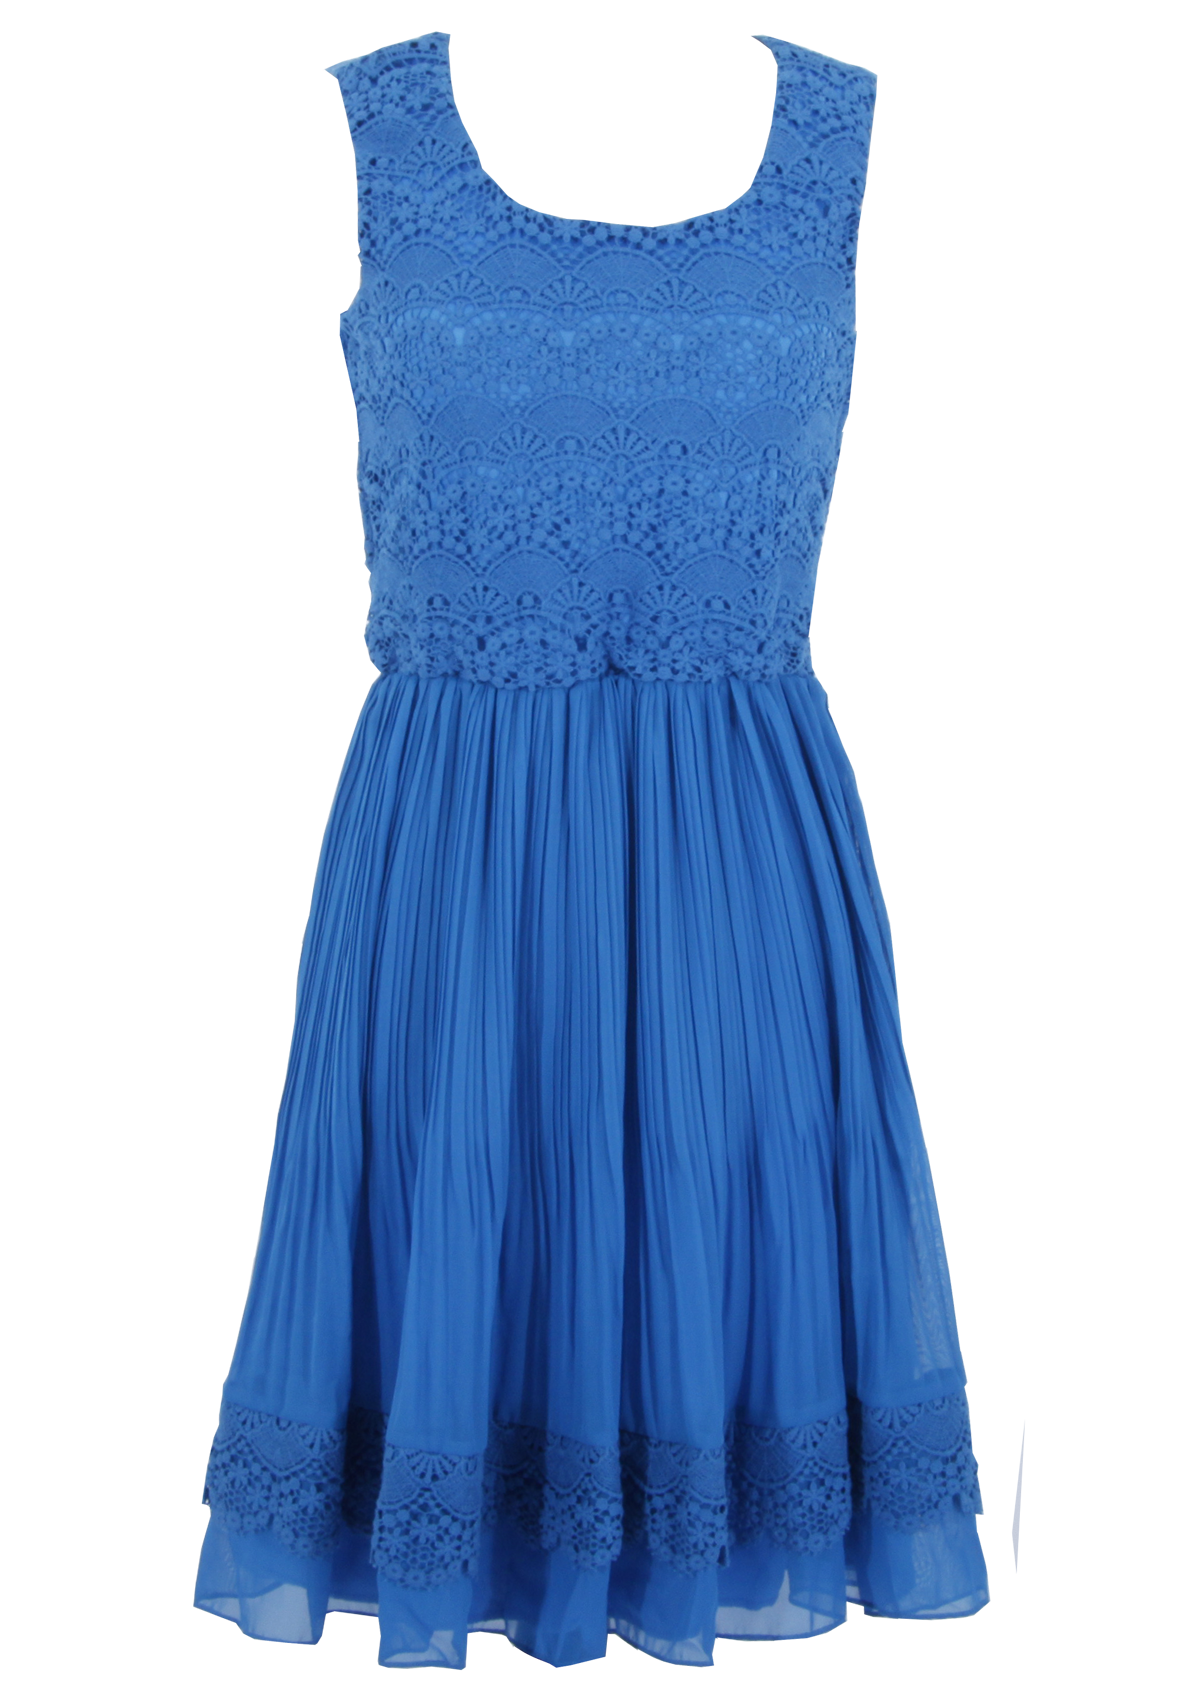 Dress Download Png PNG Image